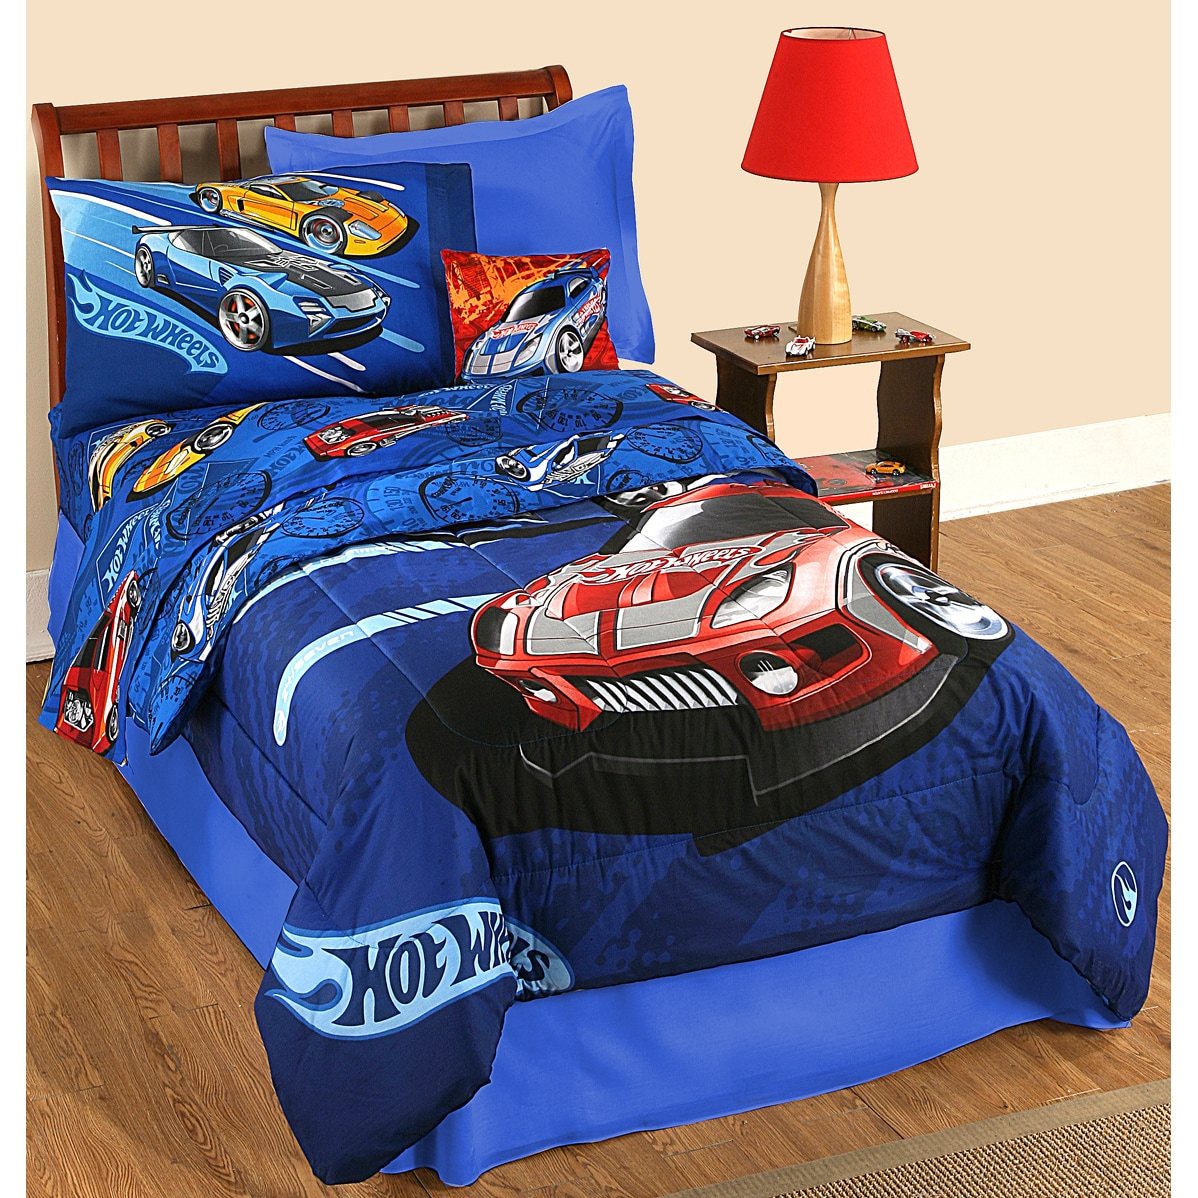 Etonnant Hot Wheels Race Twin Size Bed In A Bag With Sheet Set .